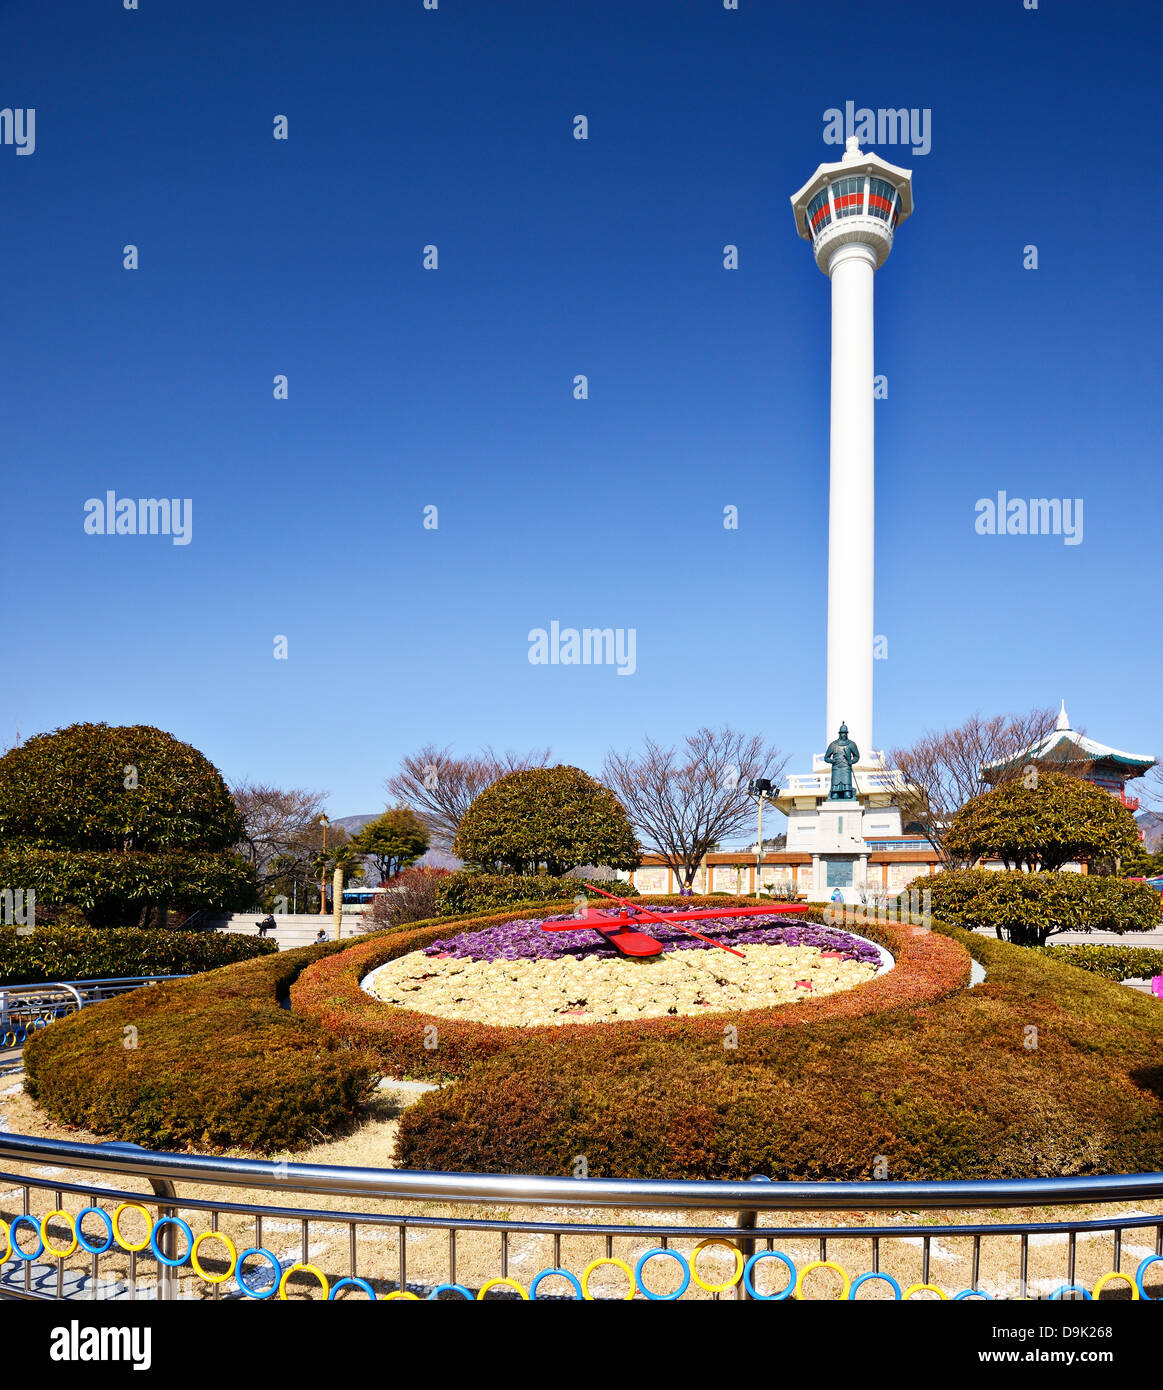 Busan, South Korea - February 11, 2013: Tourists at Busan Tower. The tower is a 118 meters high and was built in - Stock Image